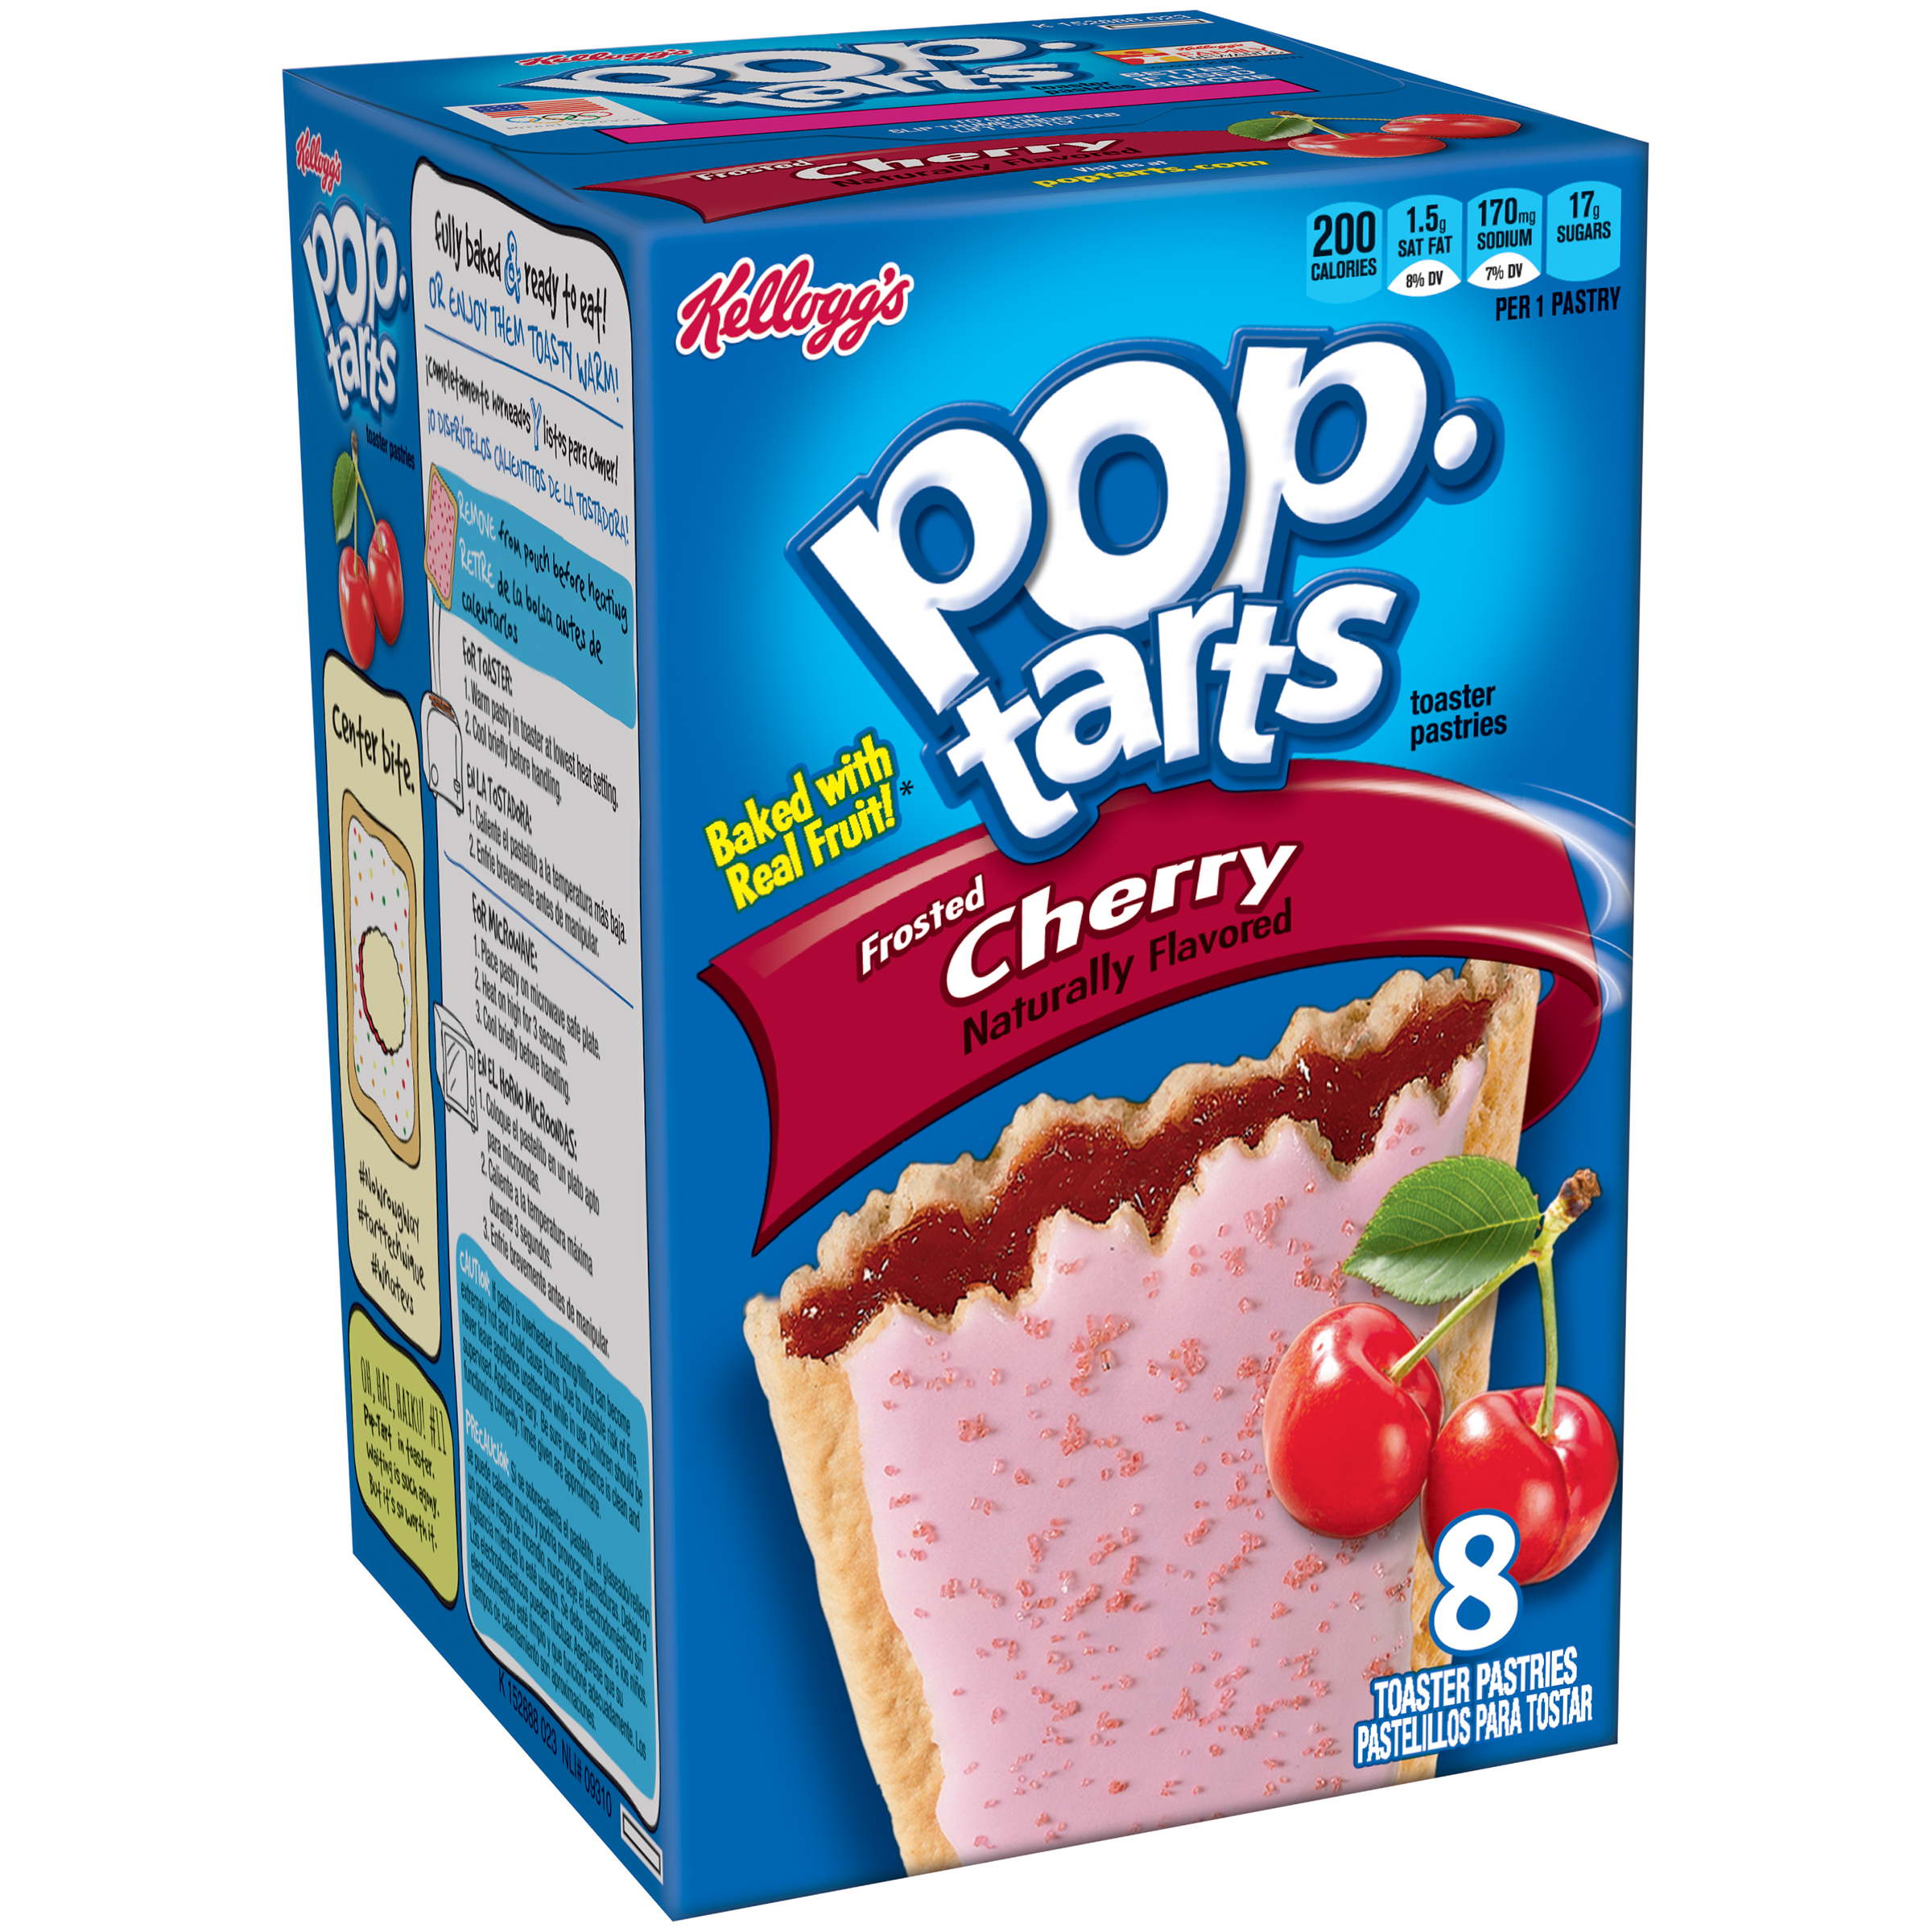 Kellogg's Pop-Tarts Frosted Cherry Toaster Pastries 8 ct 14.7 oz